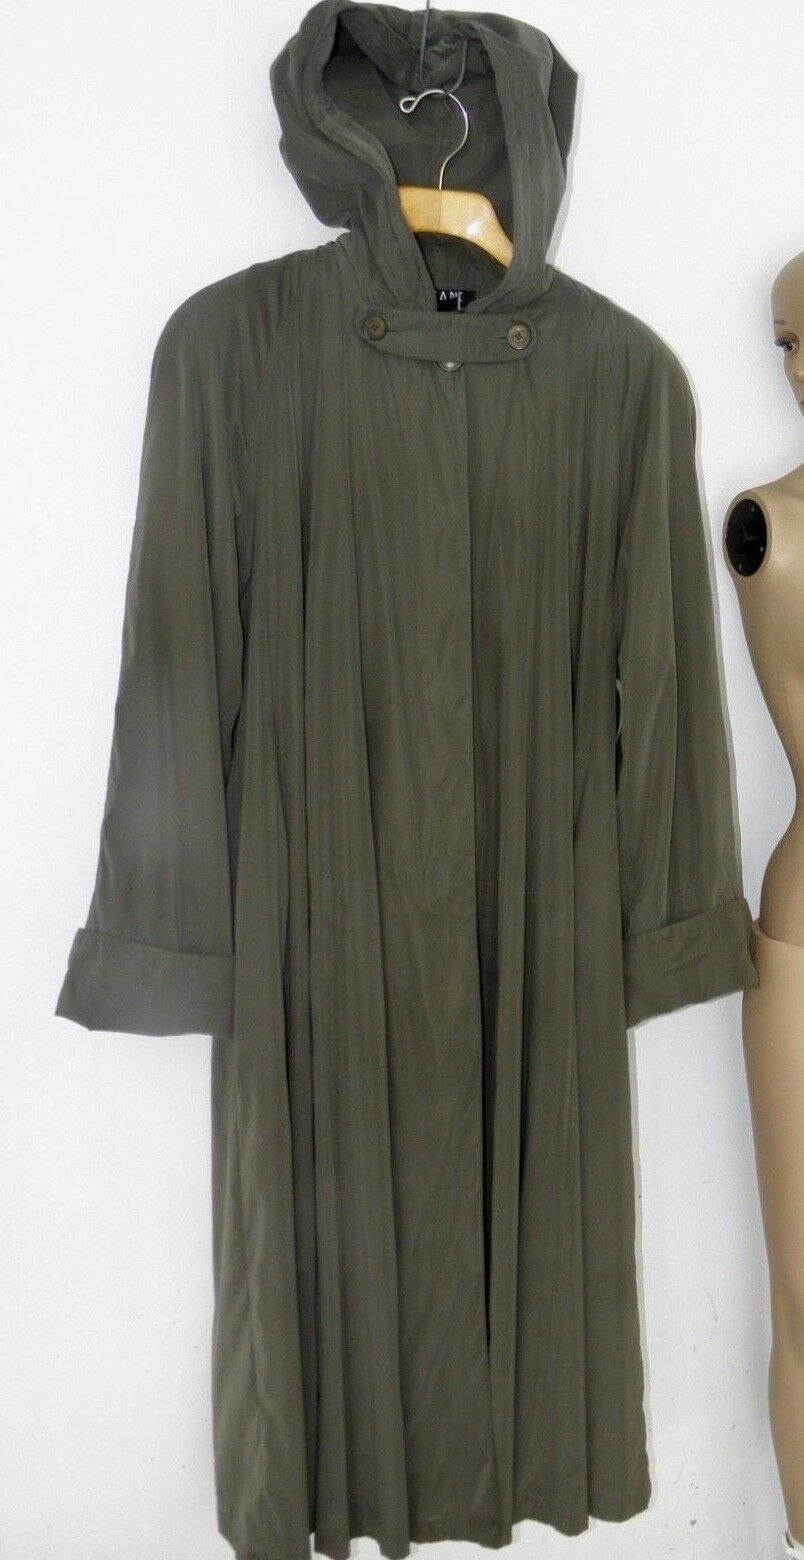 Searie Army Green Oversized Long Rain Coat sz 8 Made in USA  Unisex Trench Coat